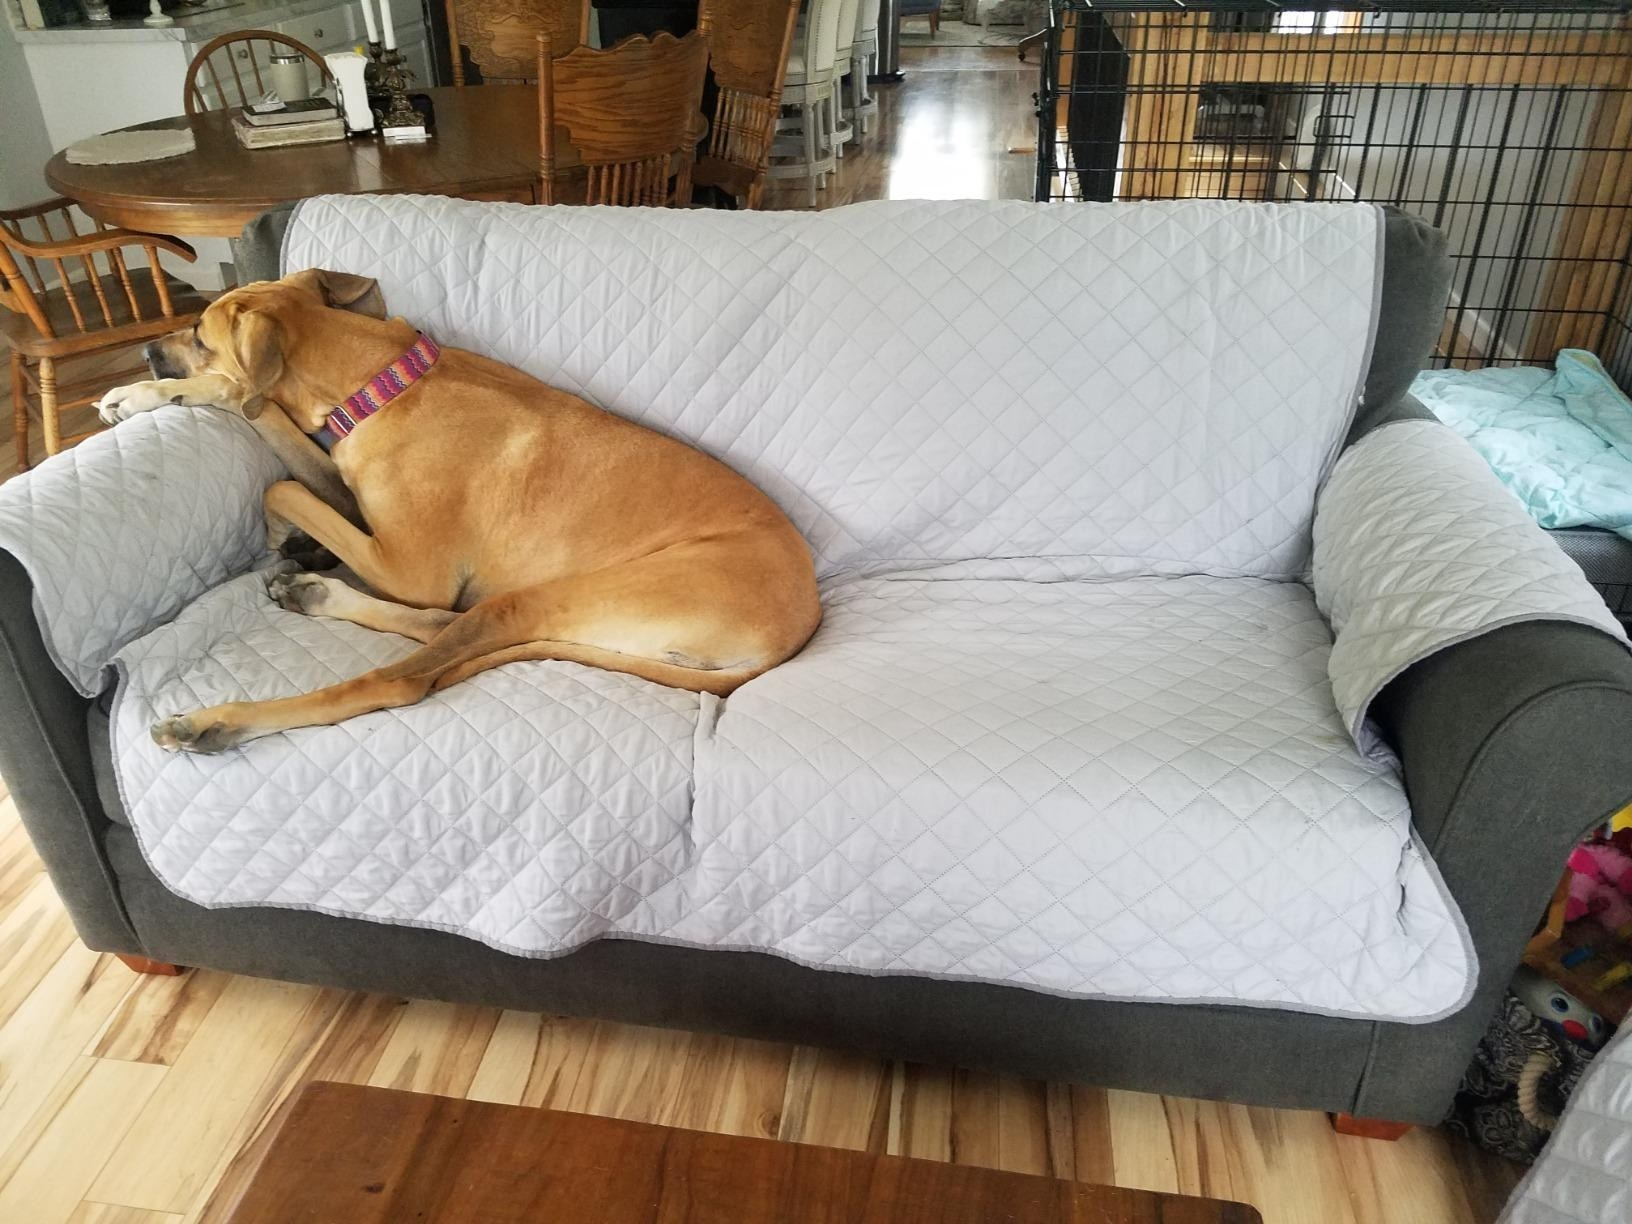 The cover on couch with dog lying on top